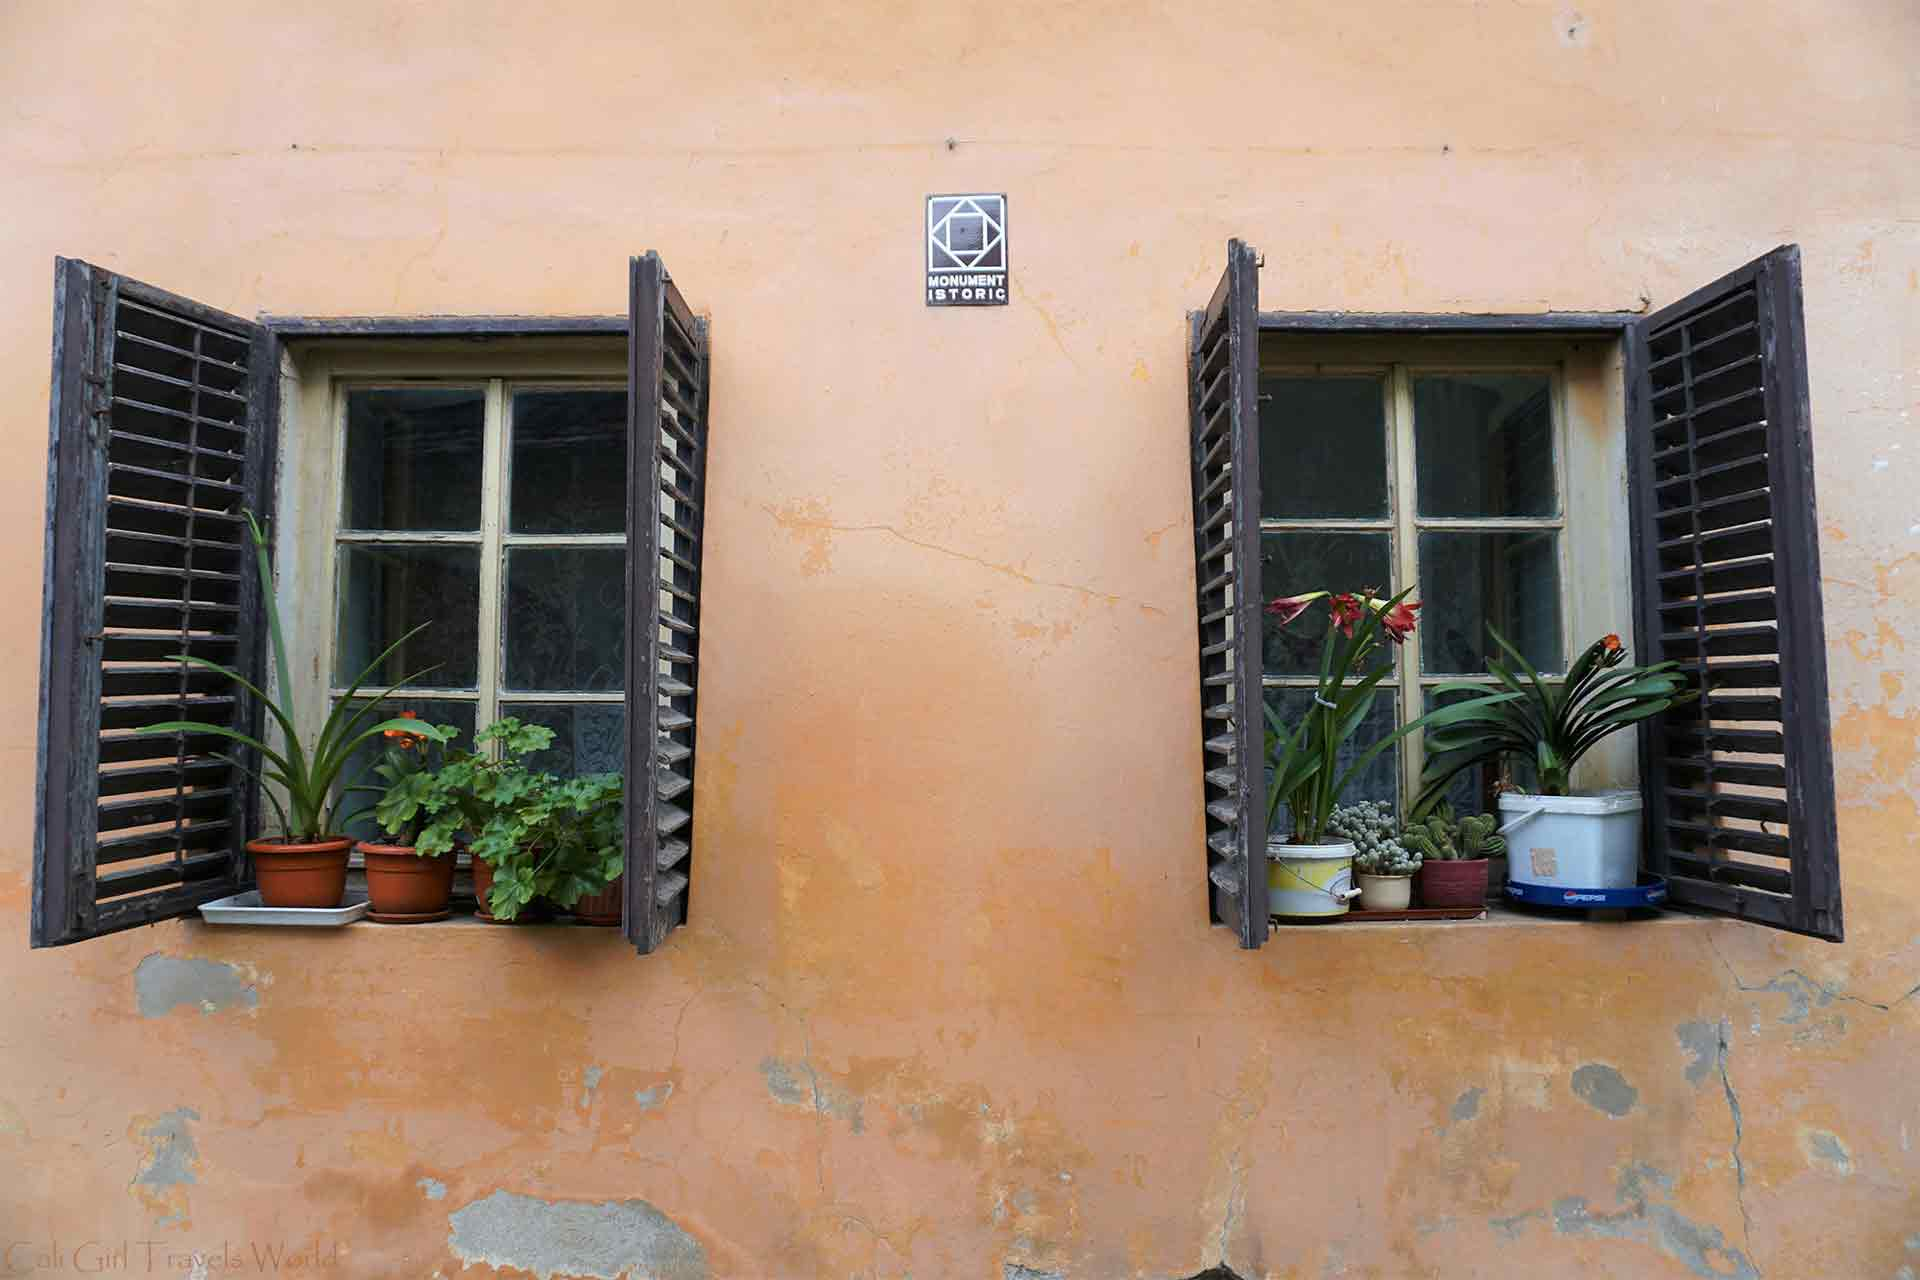 A historic home in Sighisoara, Romania with their shutters open and flower pots in the window.